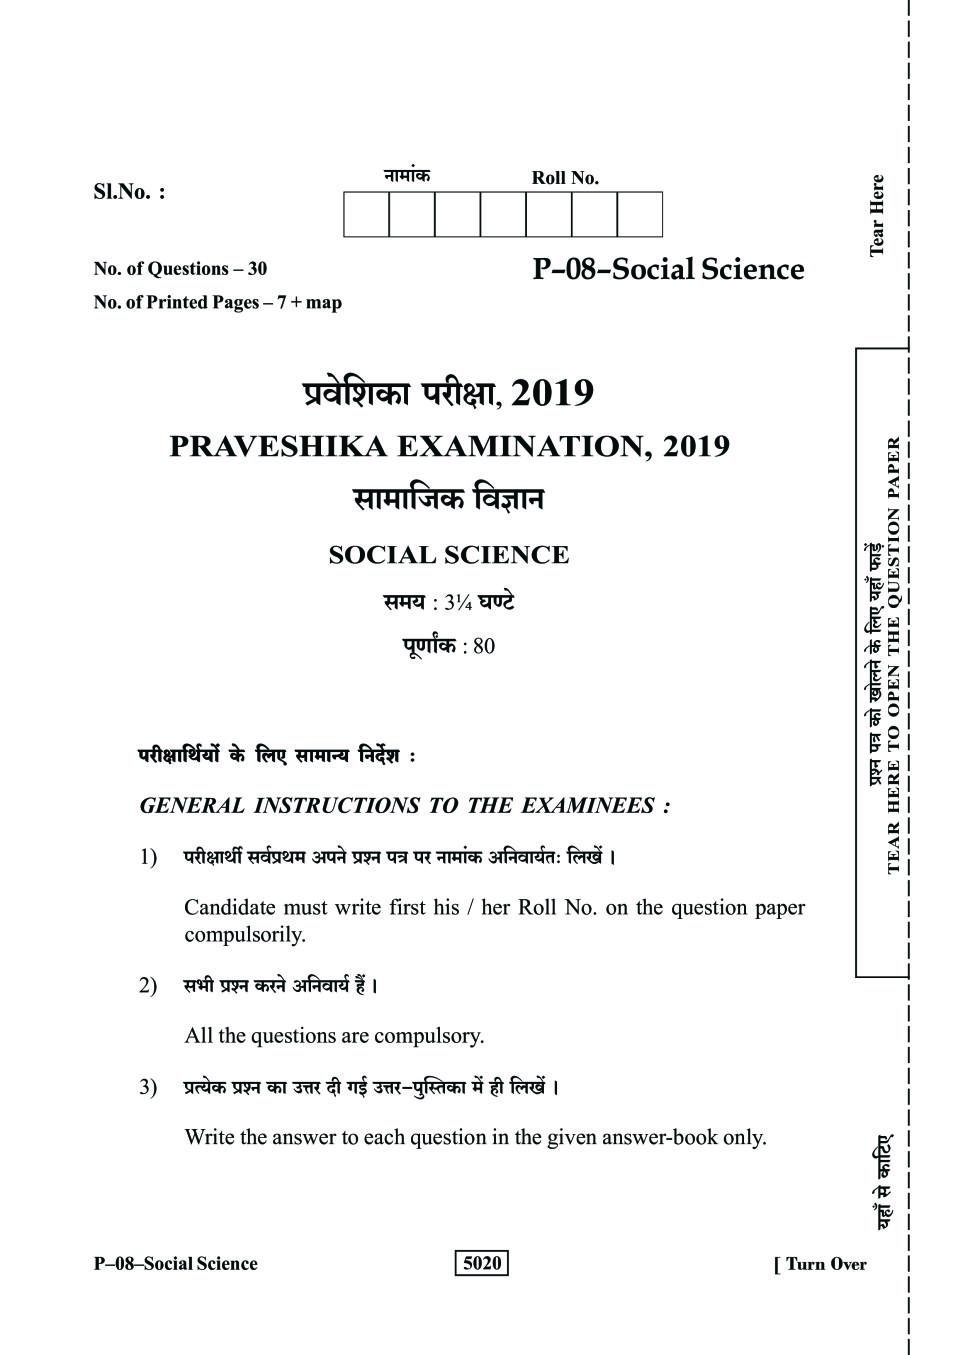 Rajasthan Board Praveshika Social Science Question Paper